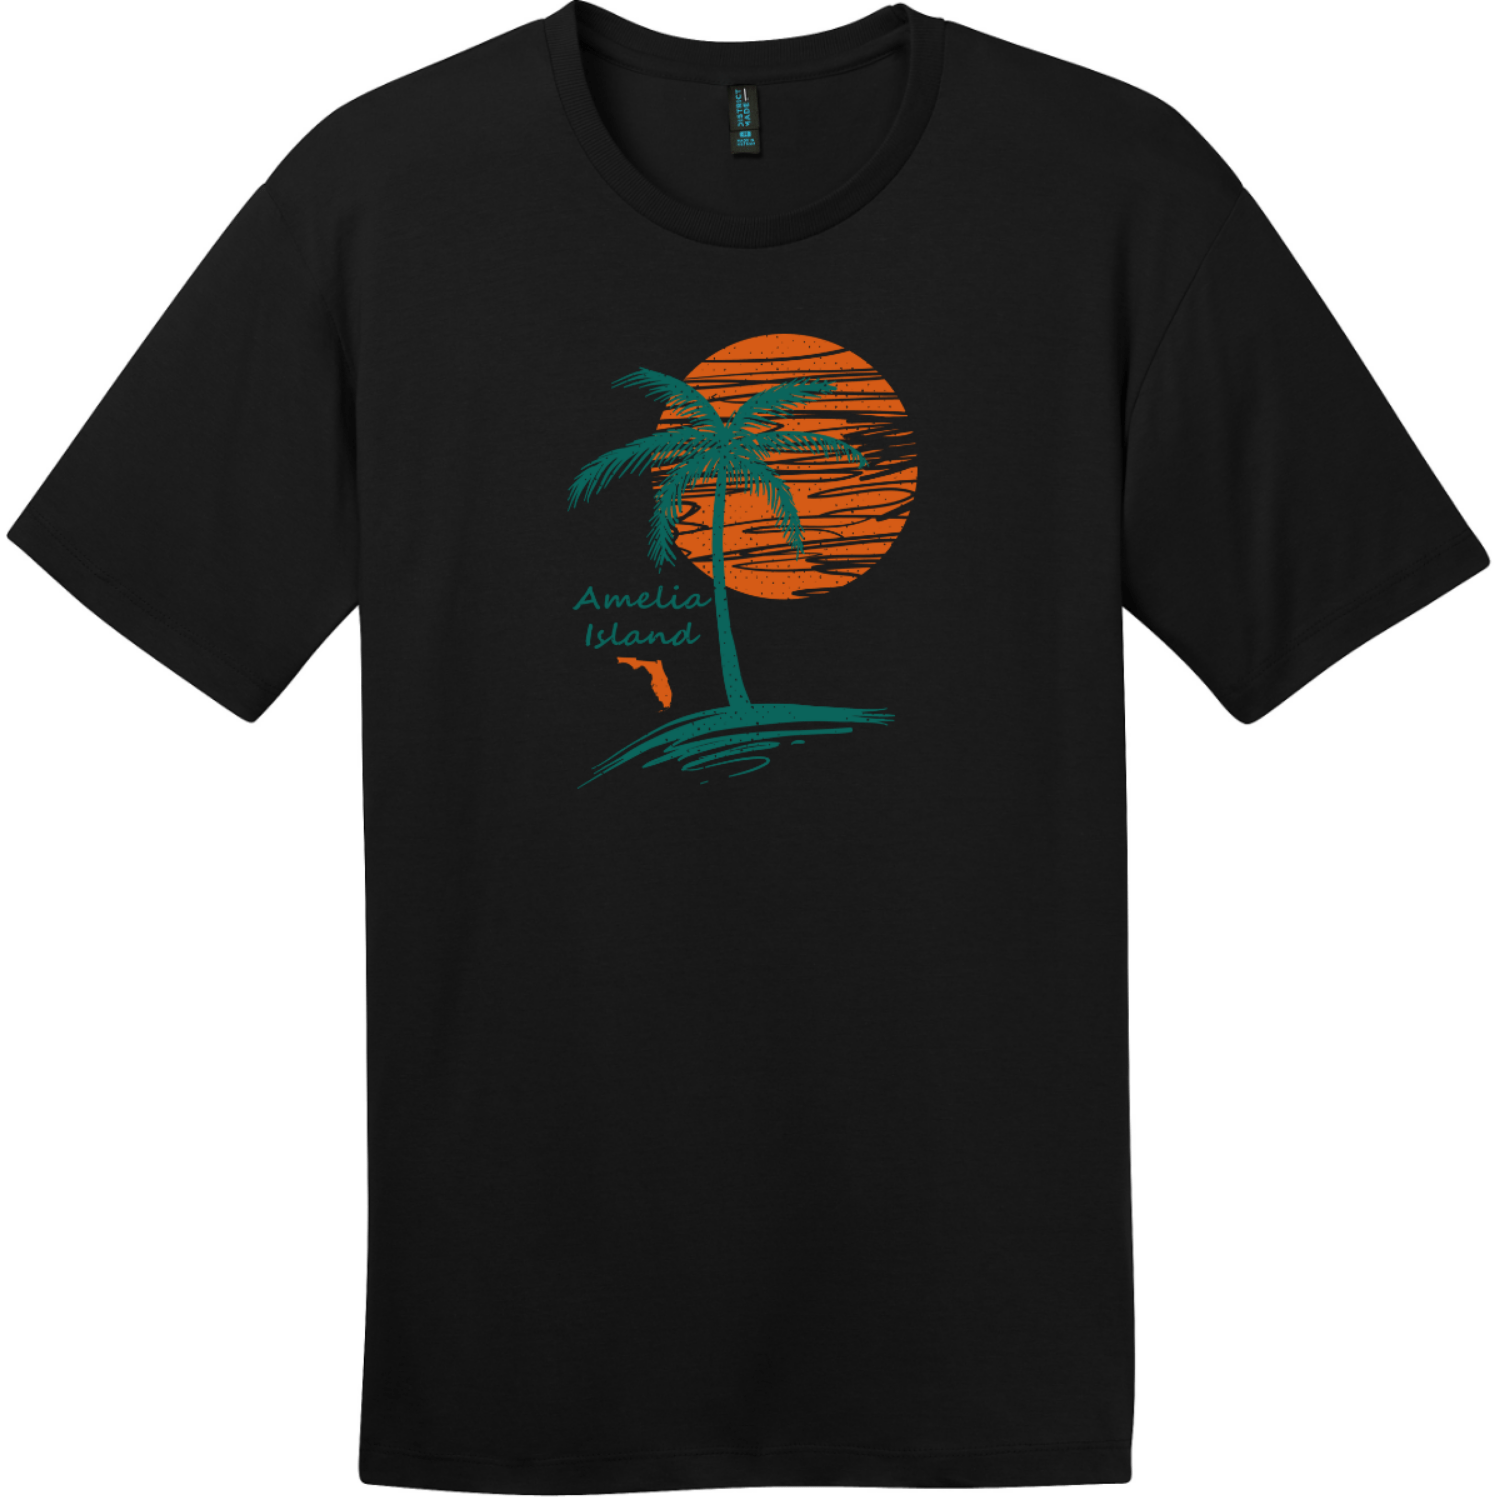 Amelia Island Palm Tree T-Shirt Jet Black District Perfect Weight Tee DT104